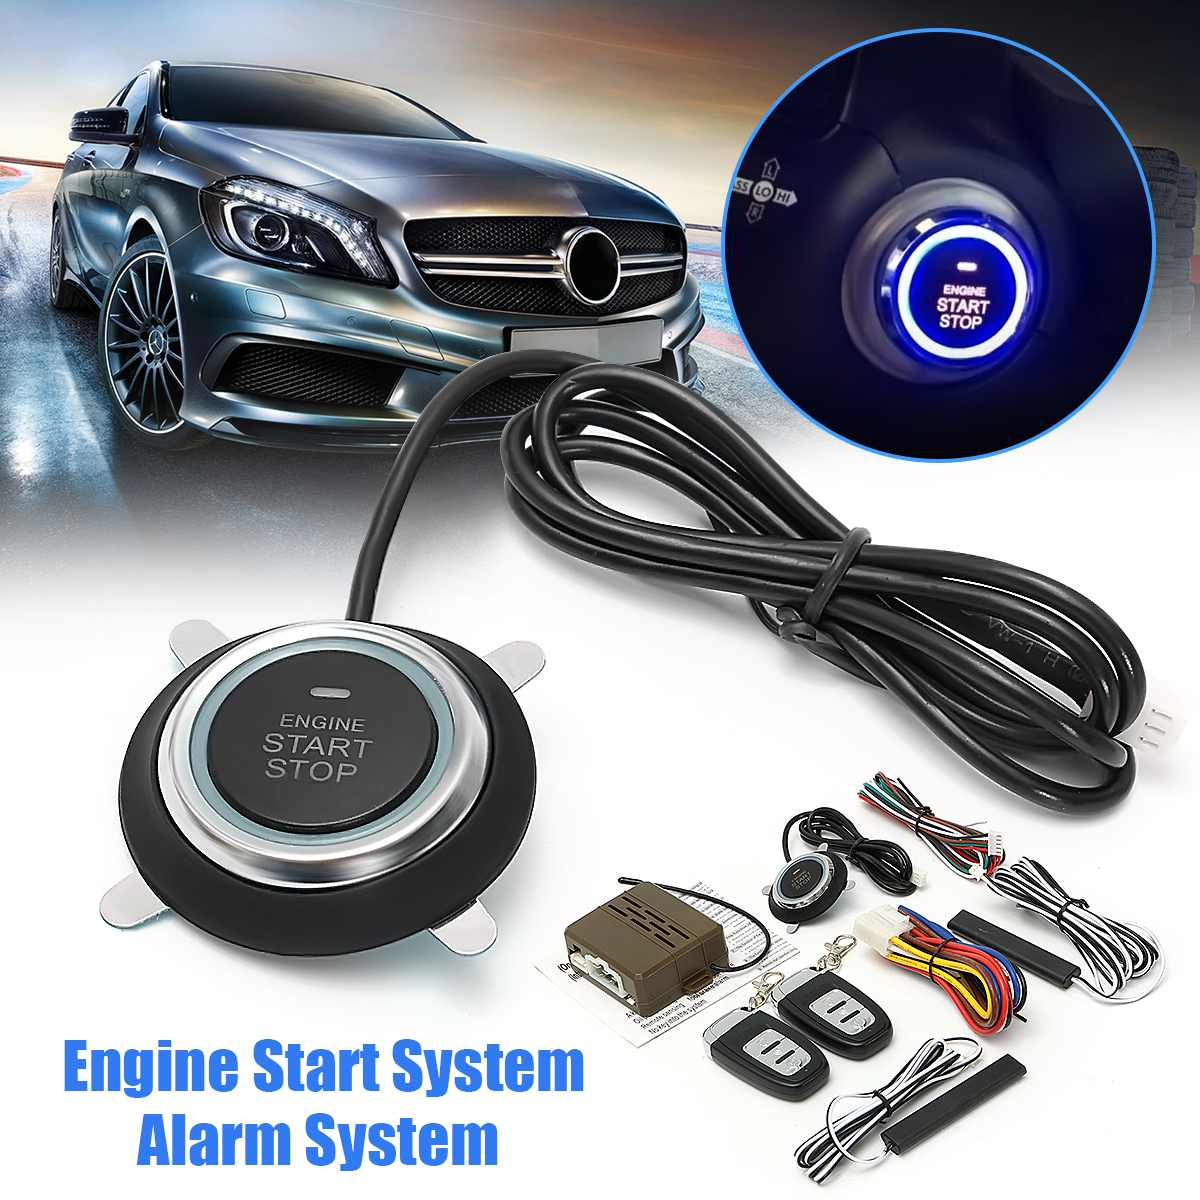 Safurance Car Alarm Start System Smart Key Passive Keyless Entry Push Button Anti theft Security System Auto Car Accessories-in Alarm System Kits from Security & Protection    1